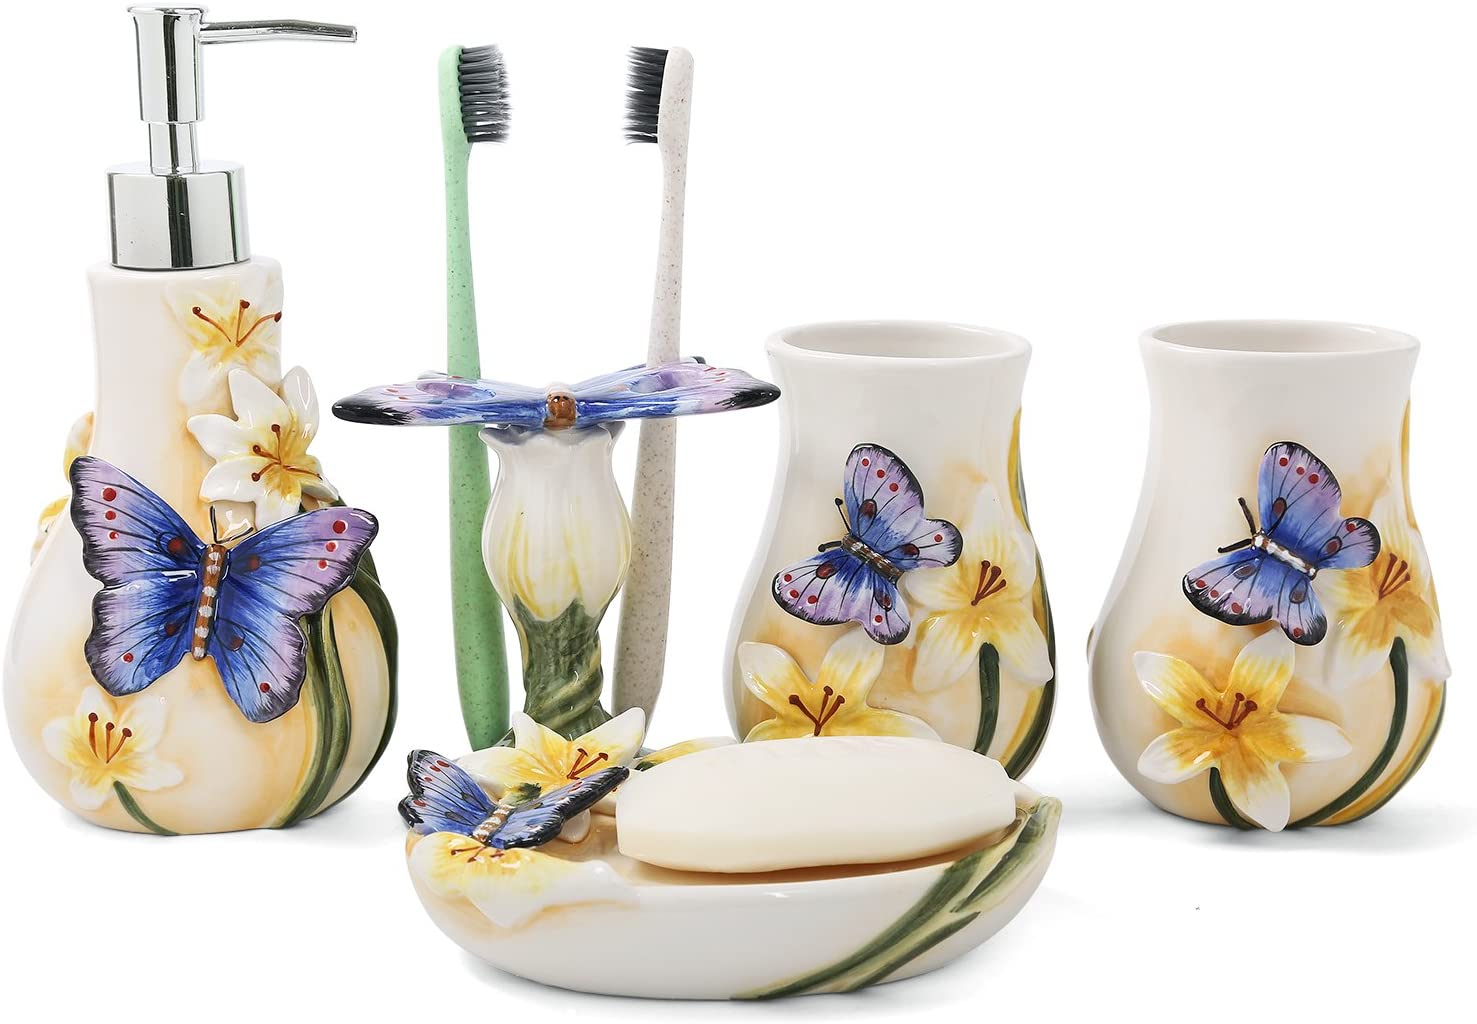 FORLONG Ceramic Bathroom Now free shipping Accessory Set Award Dancing Butterfly